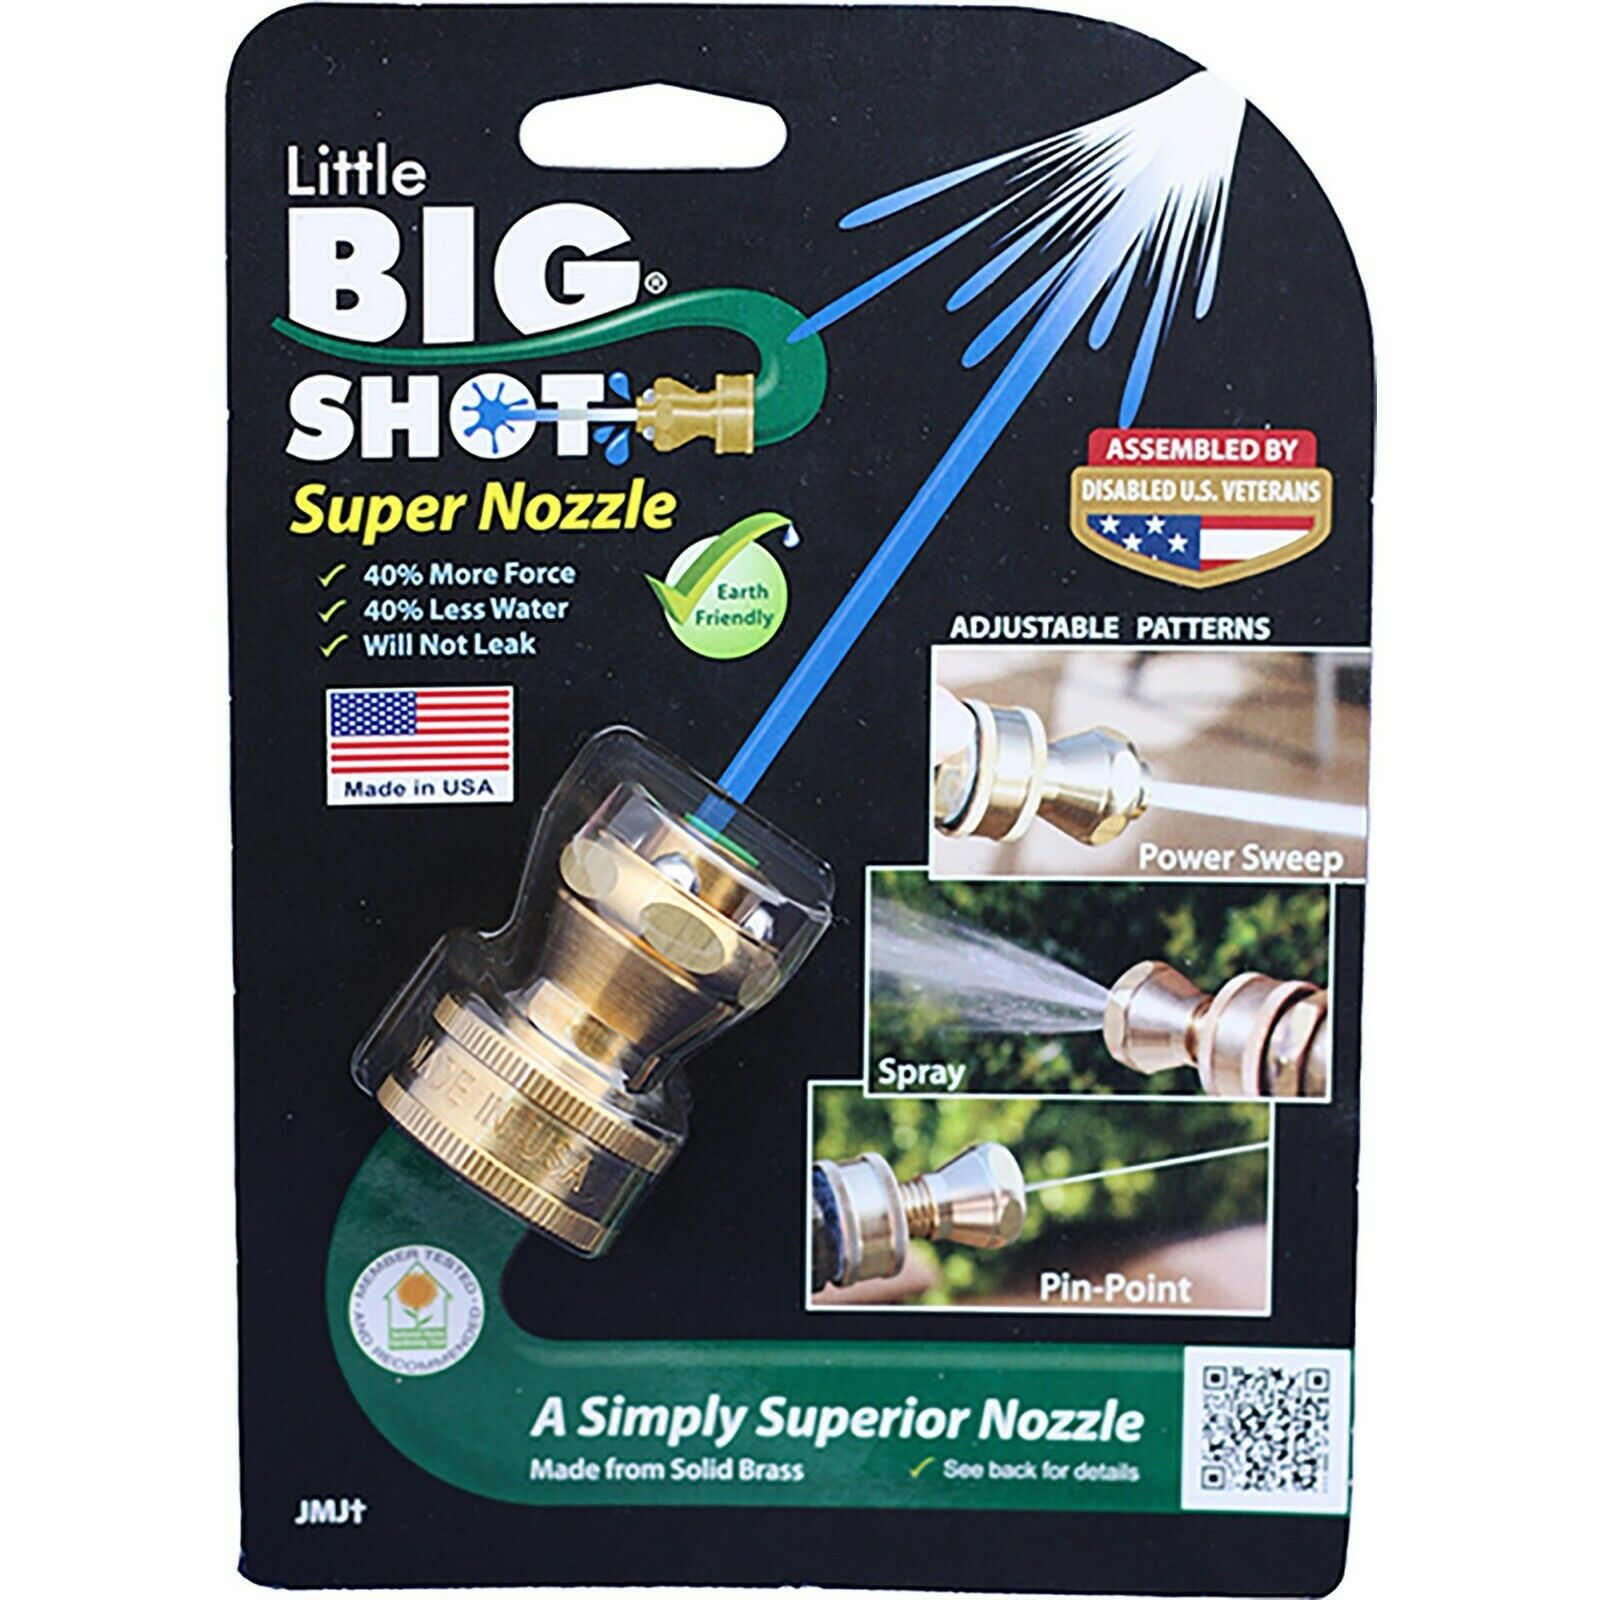 Little Big Shot Super Hose Nozzle Solid Brass Made in USA More Force, less Water